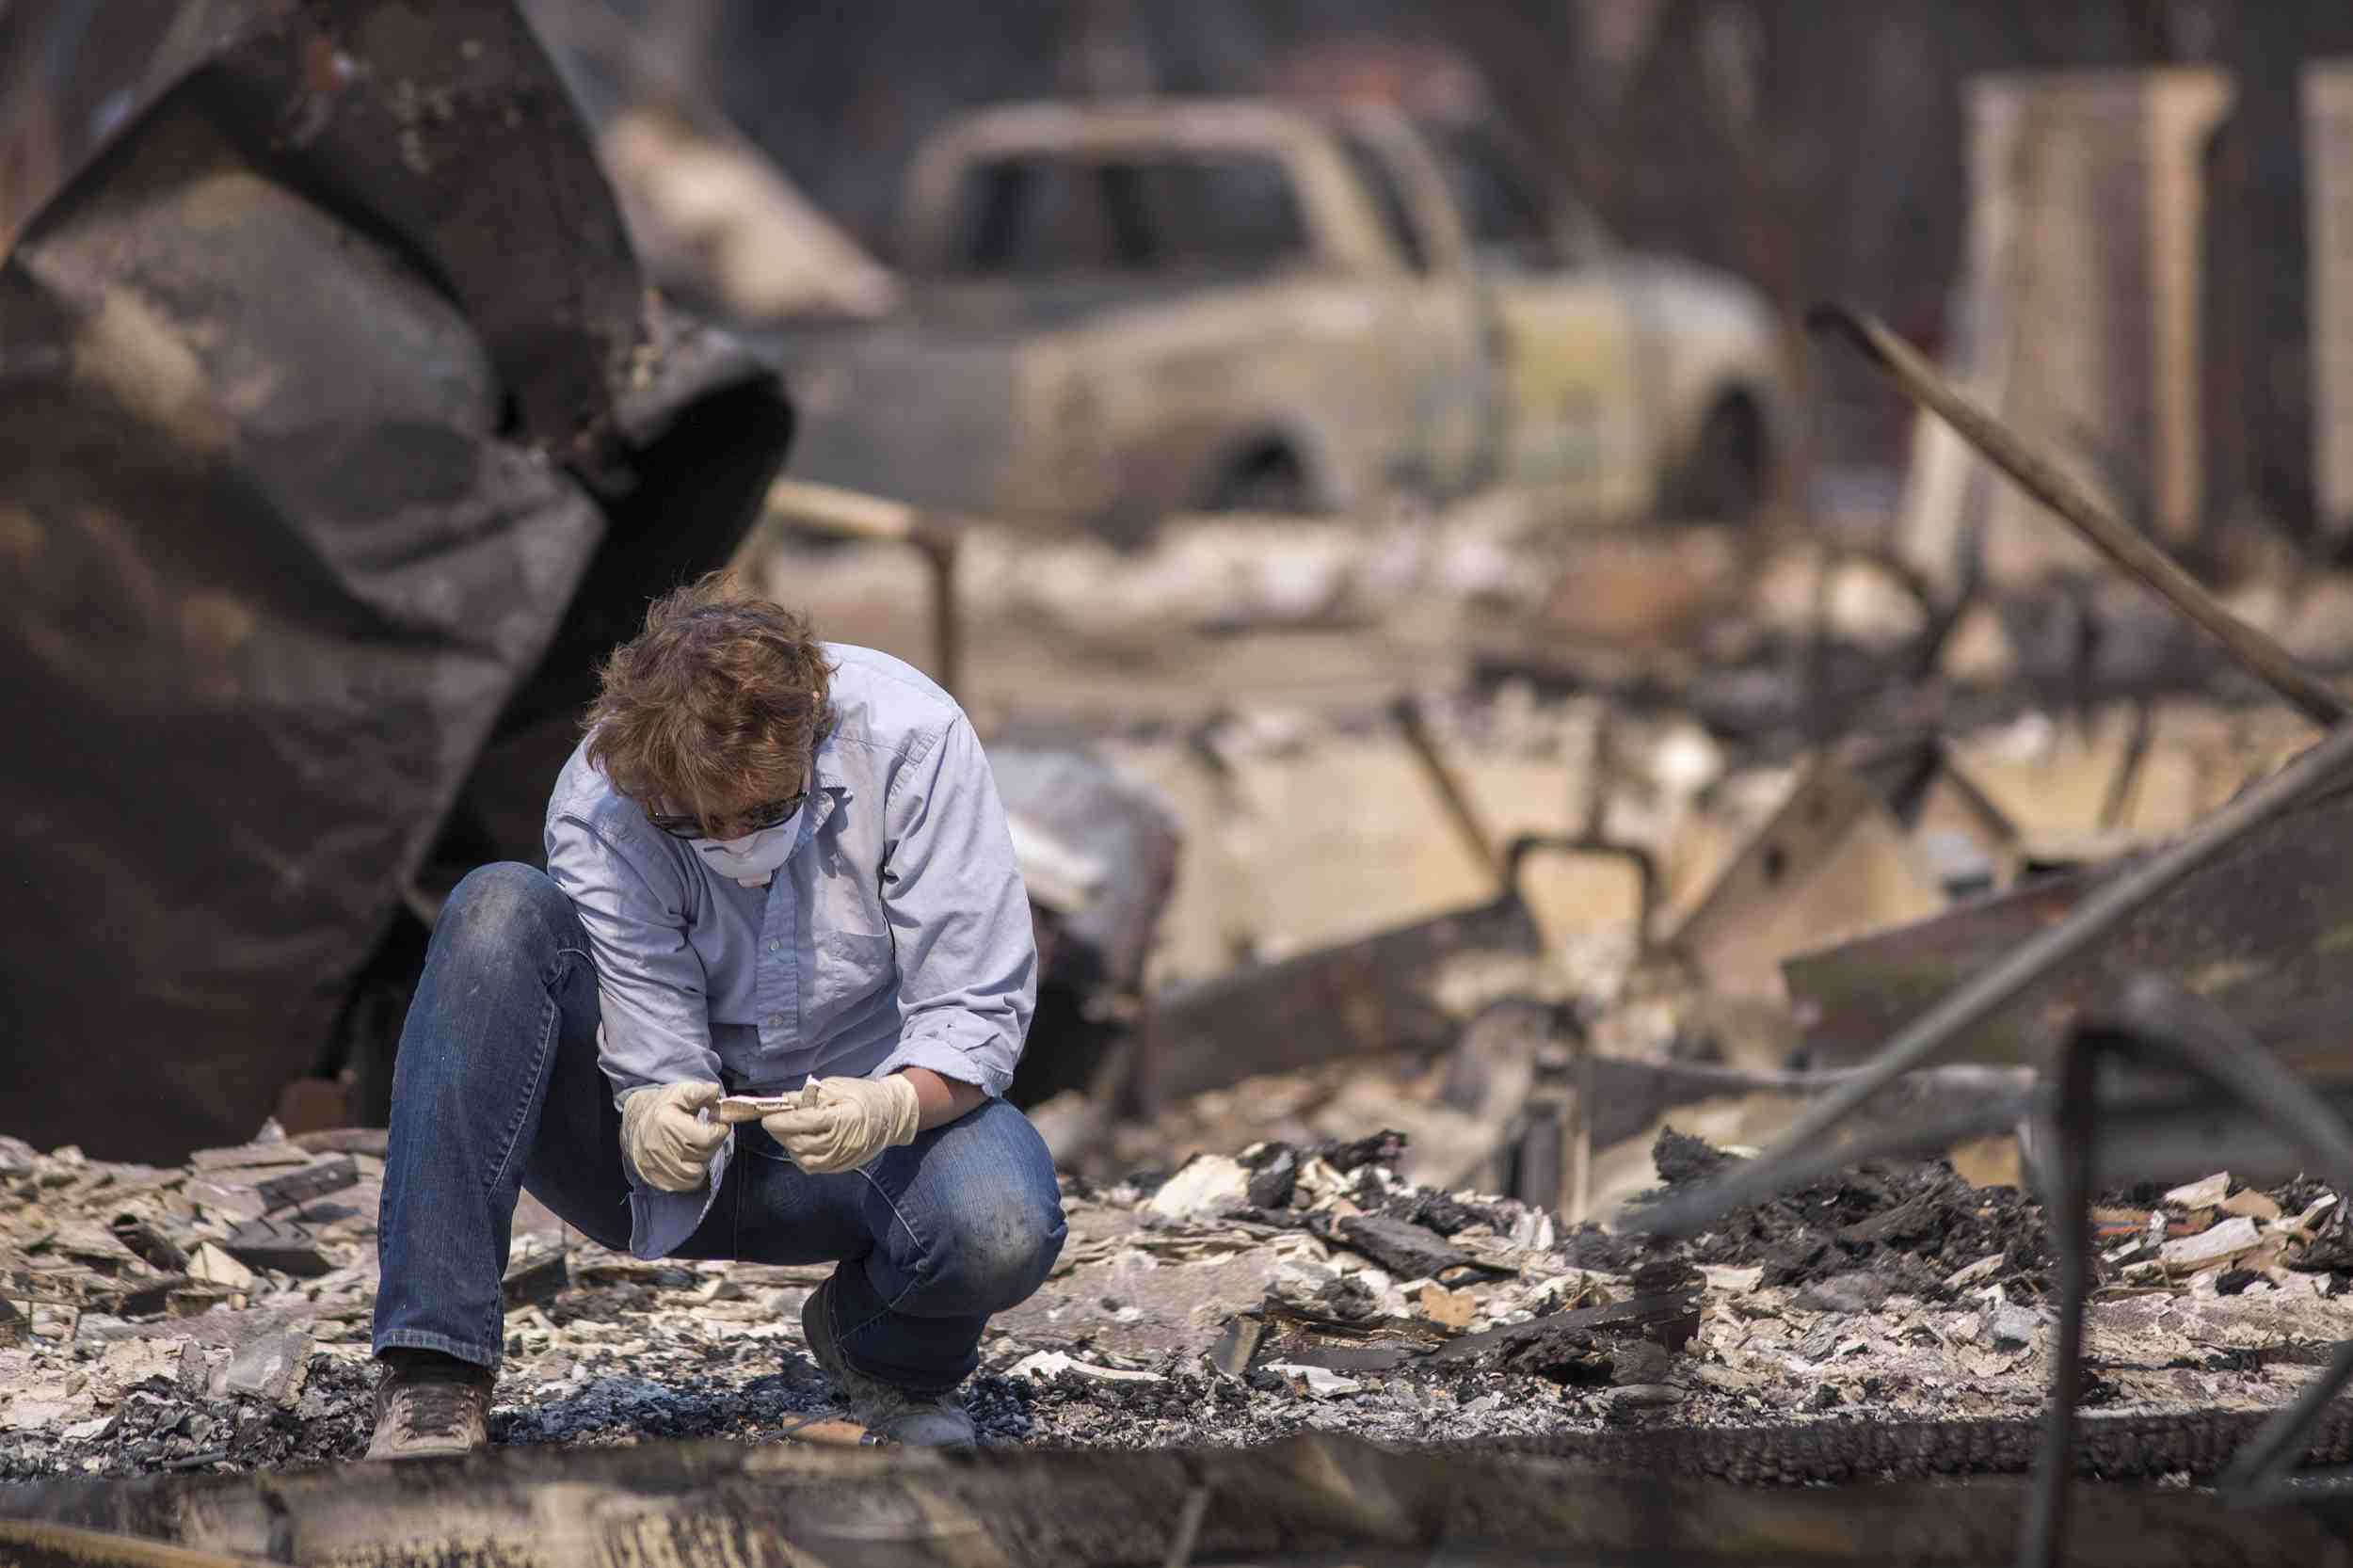 Volunteer forensic anthropologist Alexis Boutinn from Sonoma State University, investigates bones found by California National Guardsmen among fire-devastated homes on October 15, 2017 in Santa Rosa, California.